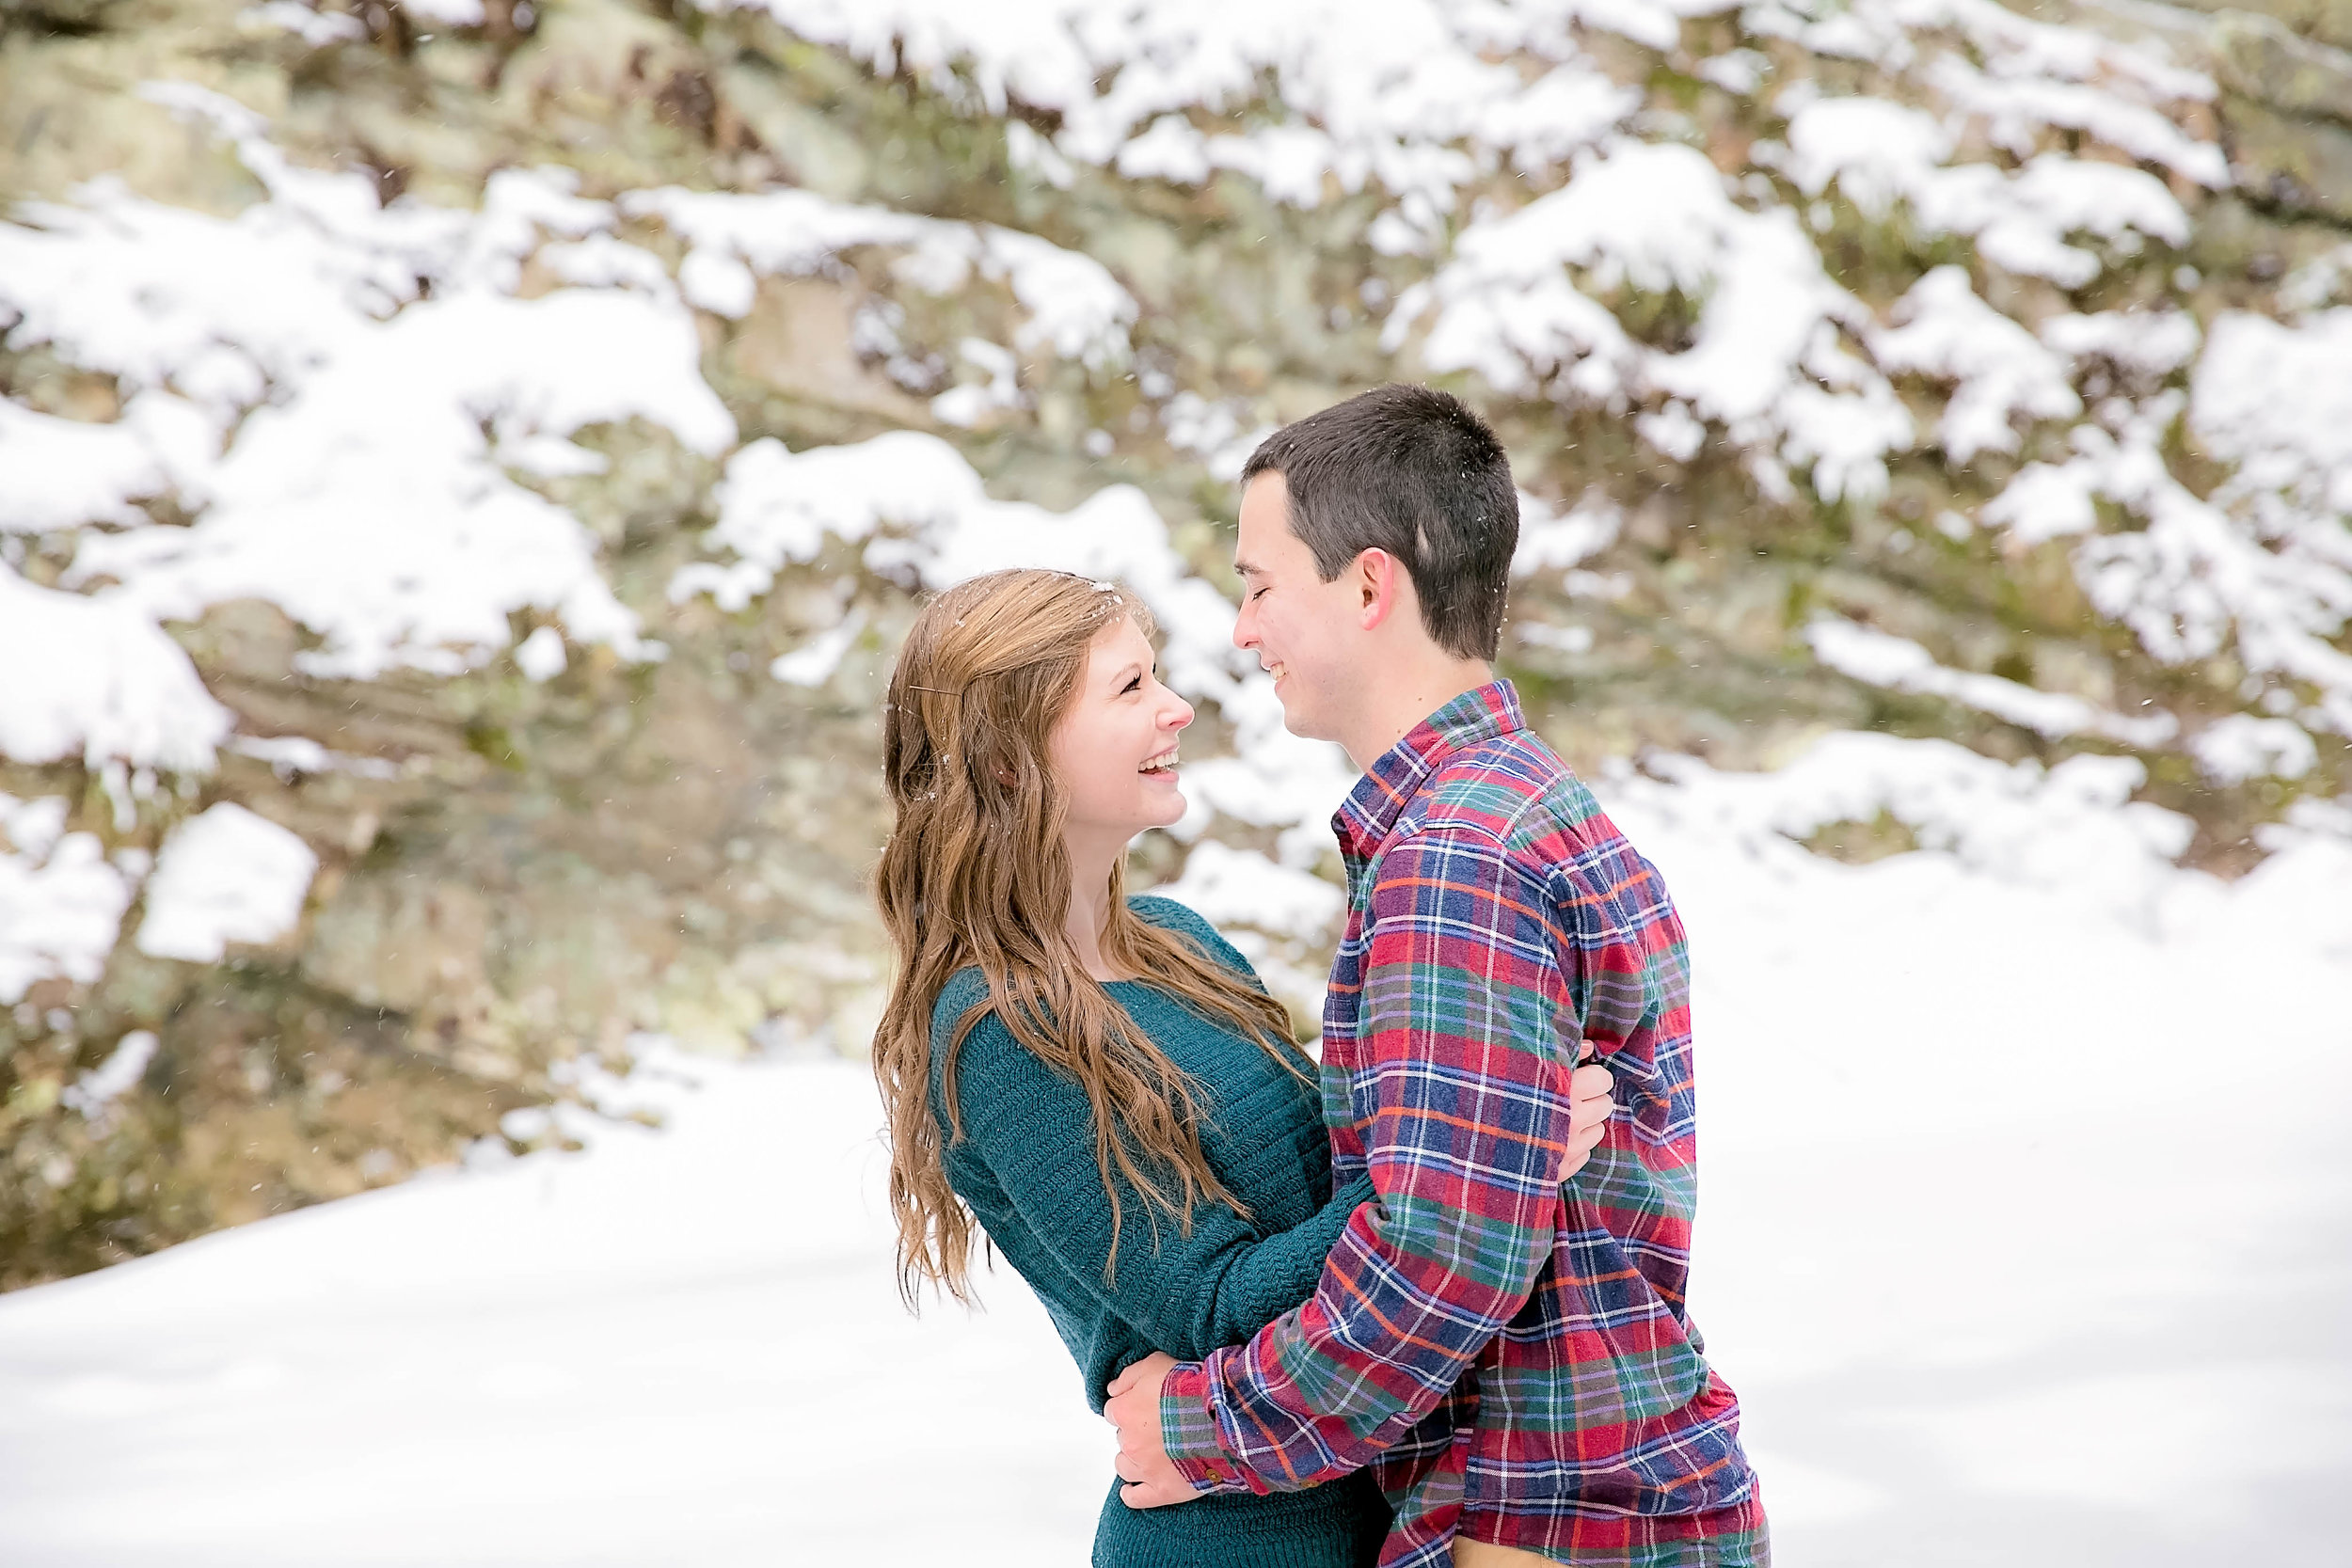 Couple laughing in snow